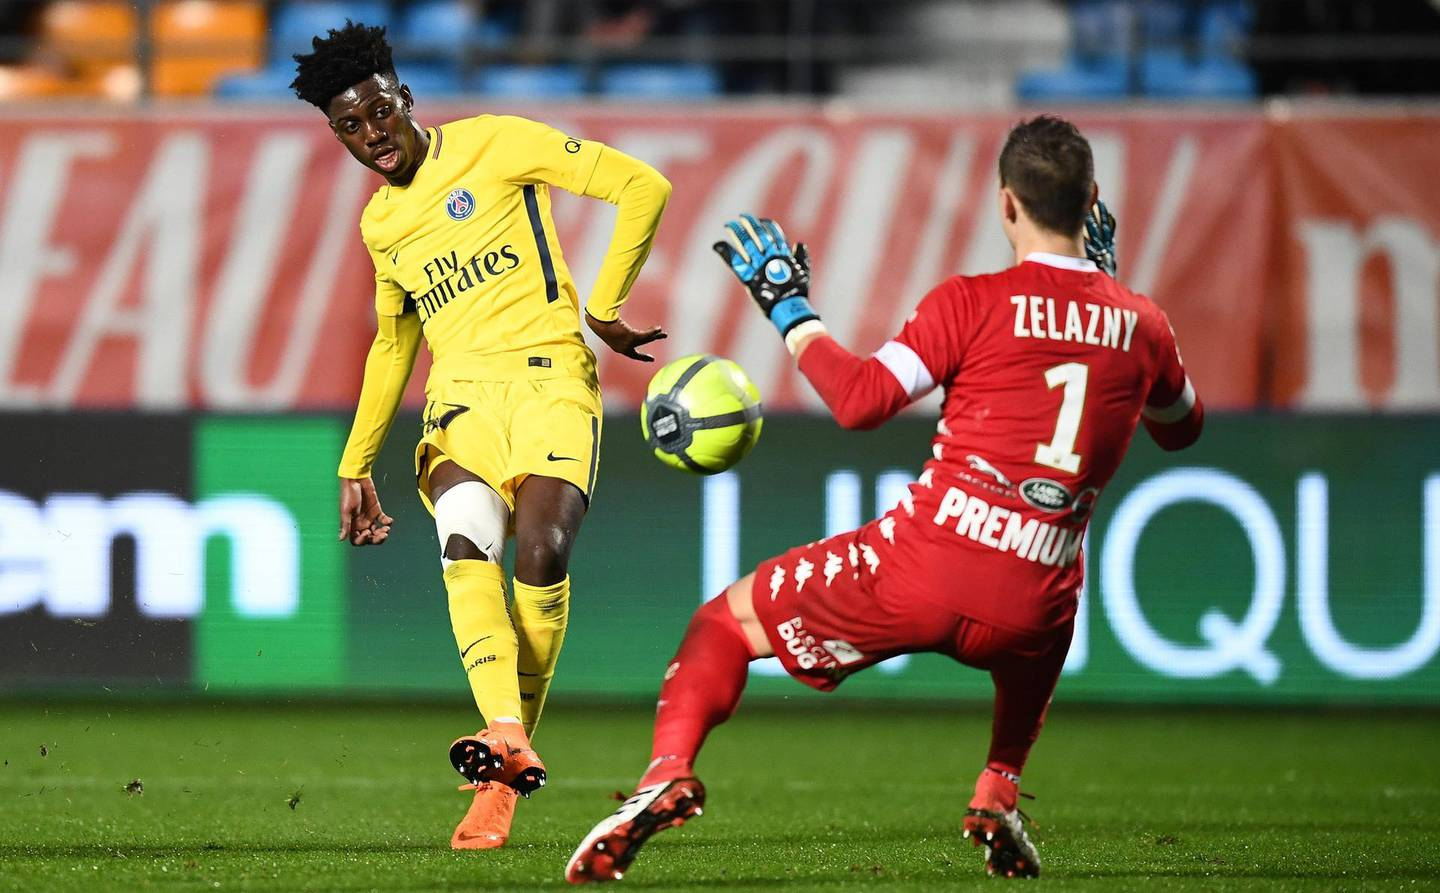 Paris Saint-Germain's US forward Timothy Weah (L) vies with Troyes' French goalkeeper Erwin Zelazny during the French L1 football match between Troyes and Paris Saint-Germain at the Aube Stadium in Troyes on March 3, 2018. / AFP PHOTO / FRANCK FIFE